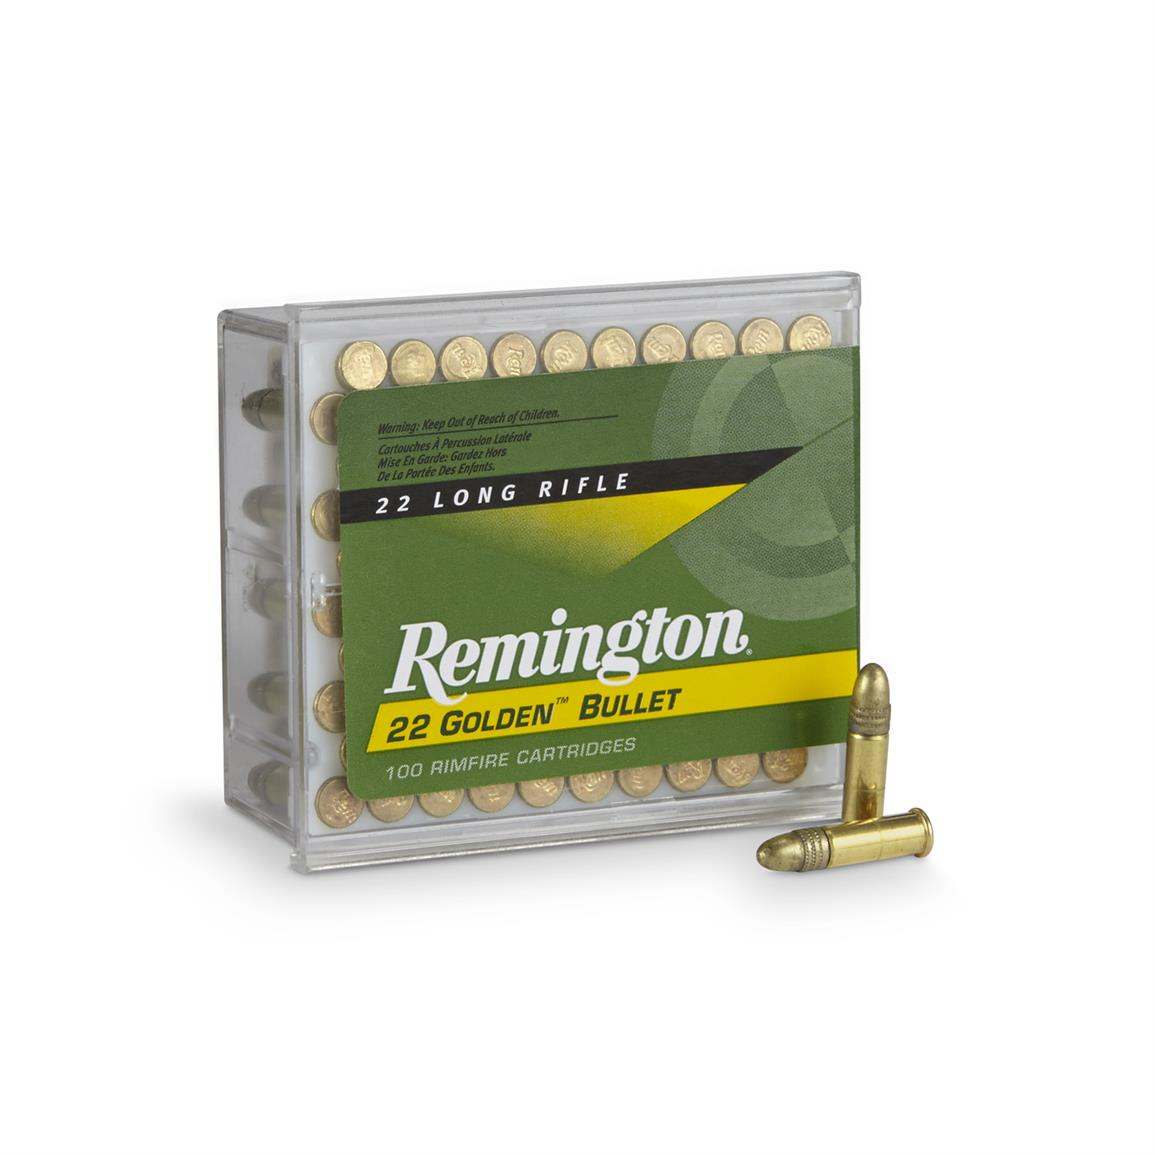 100 rounds Remington Golden Bullet .22LR High-Velocity RN Ammo